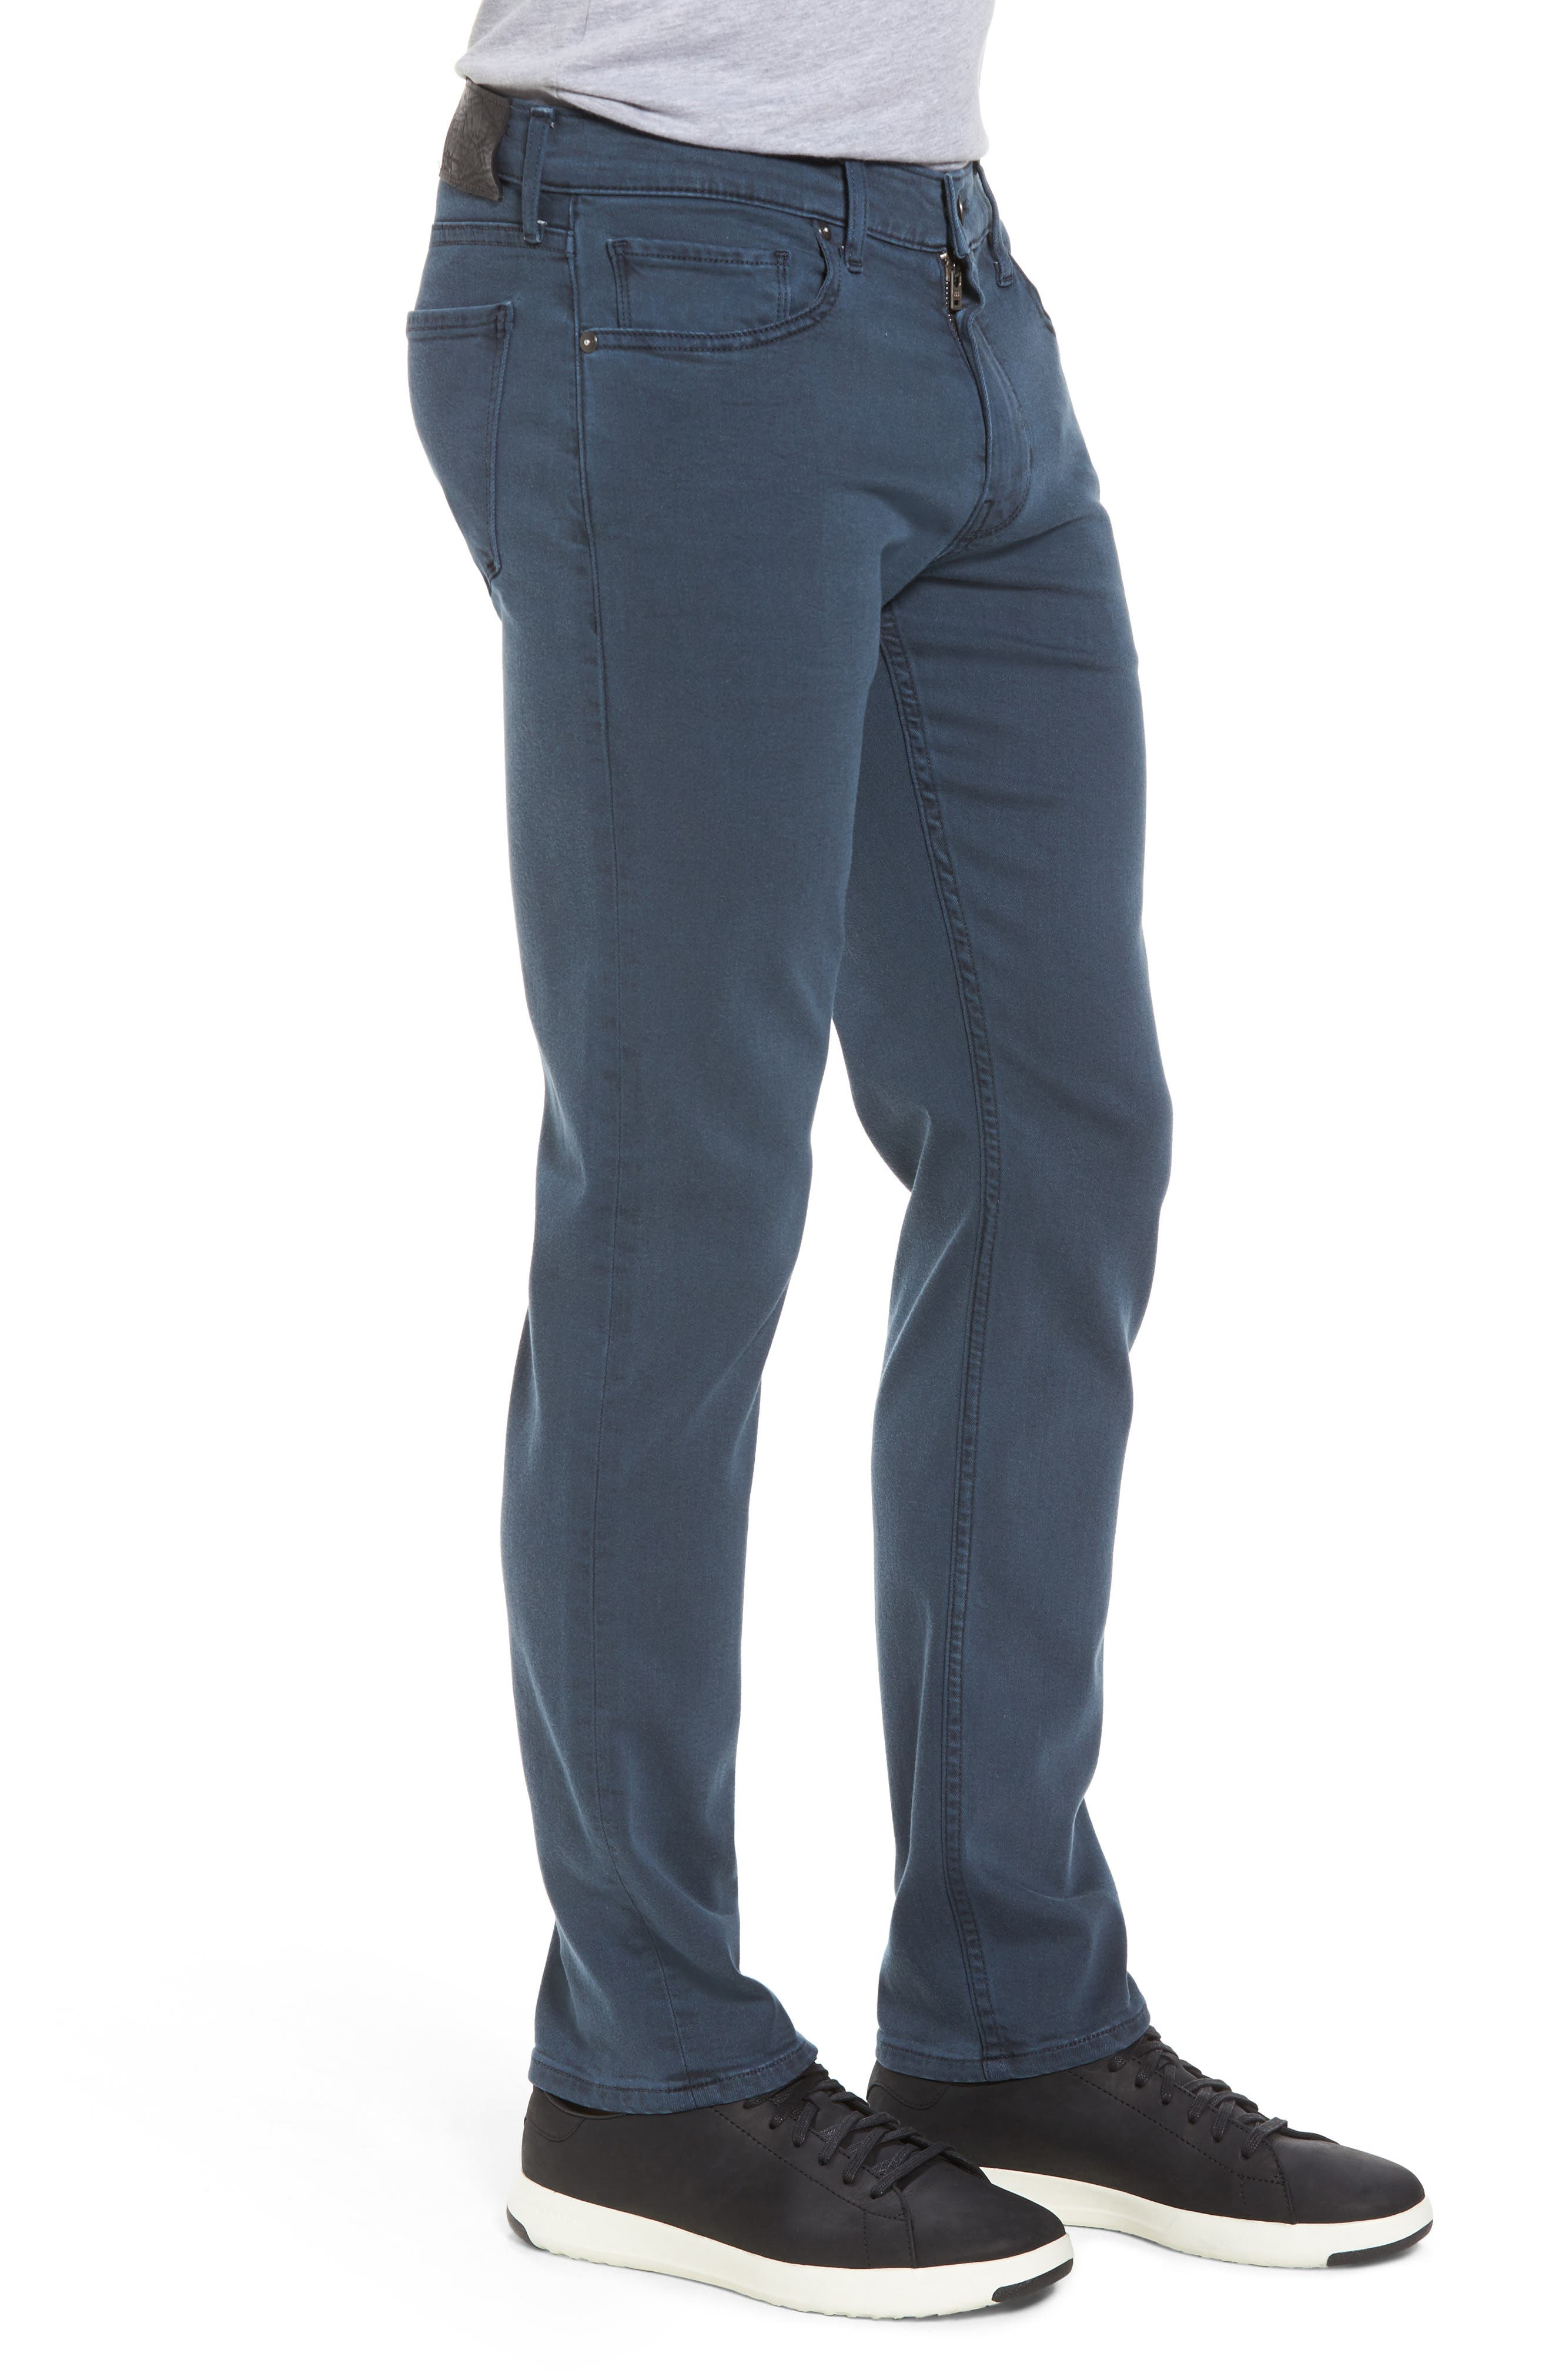 Lennox Slim Fit Jeans,                             Alternate thumbnail 3, color,                             VINTAGE AMALFI